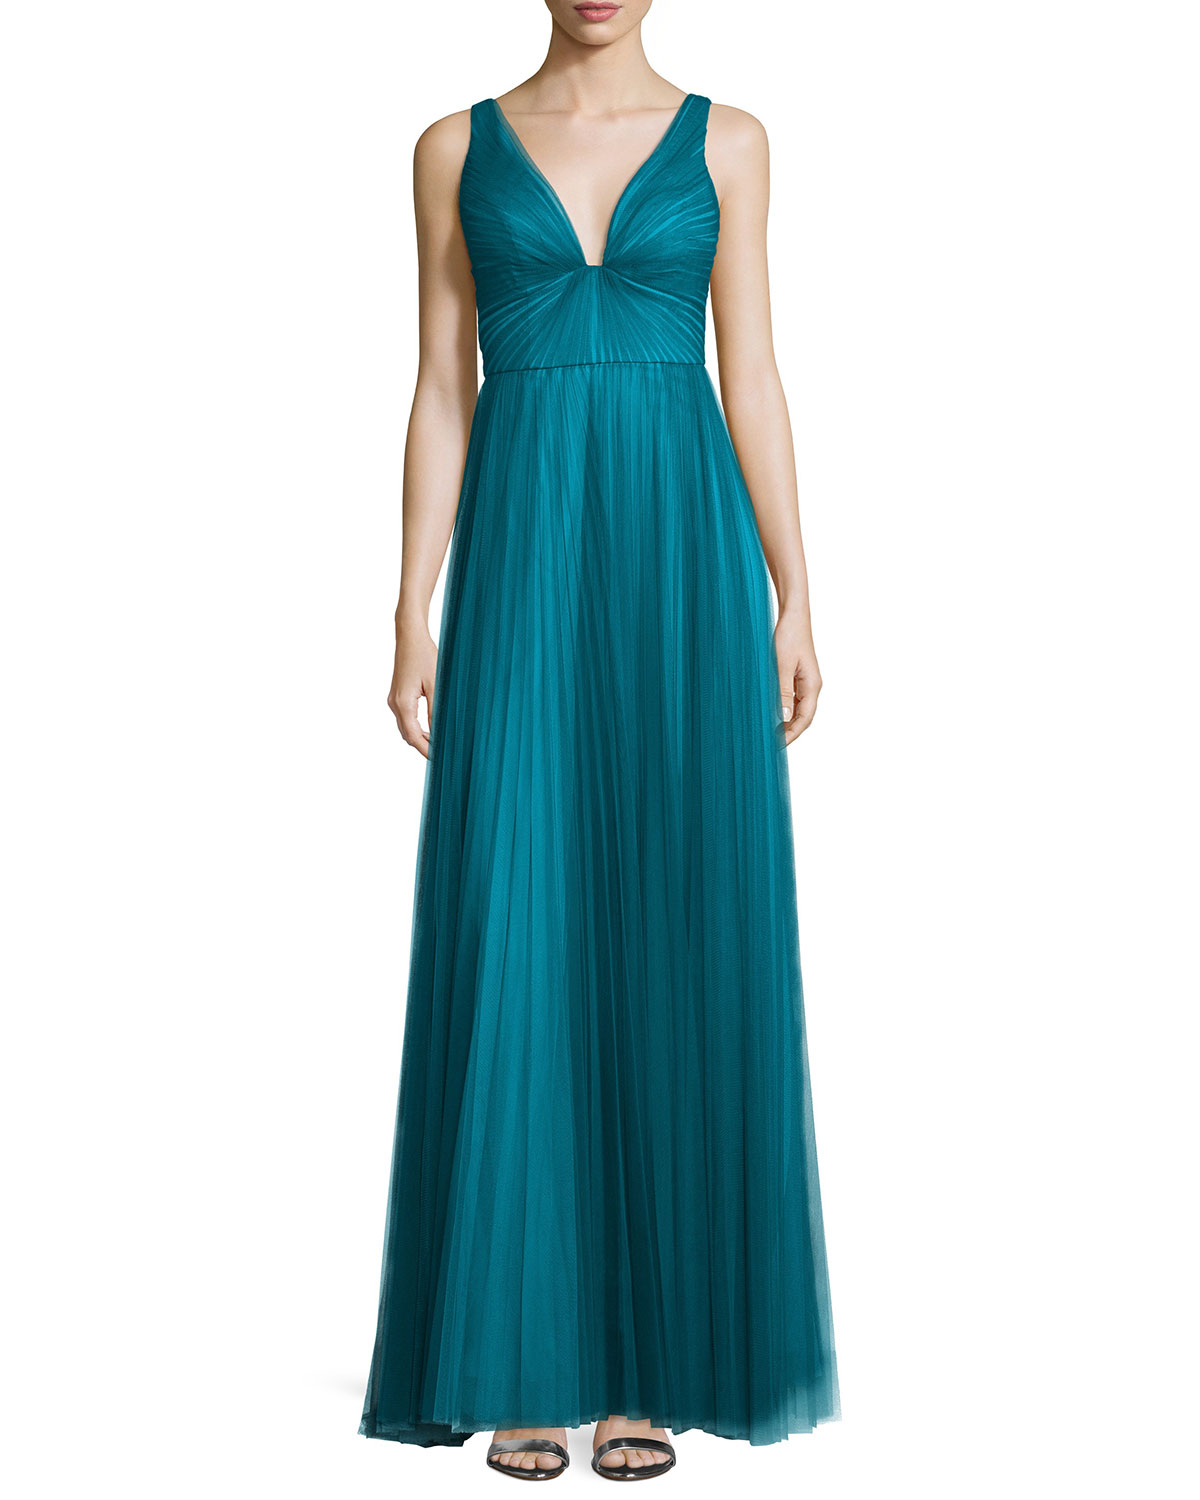 Sleeveless V-Neck Plisse Gown, Teal (Blue), Size: 0 - ML Monique Lhuillier